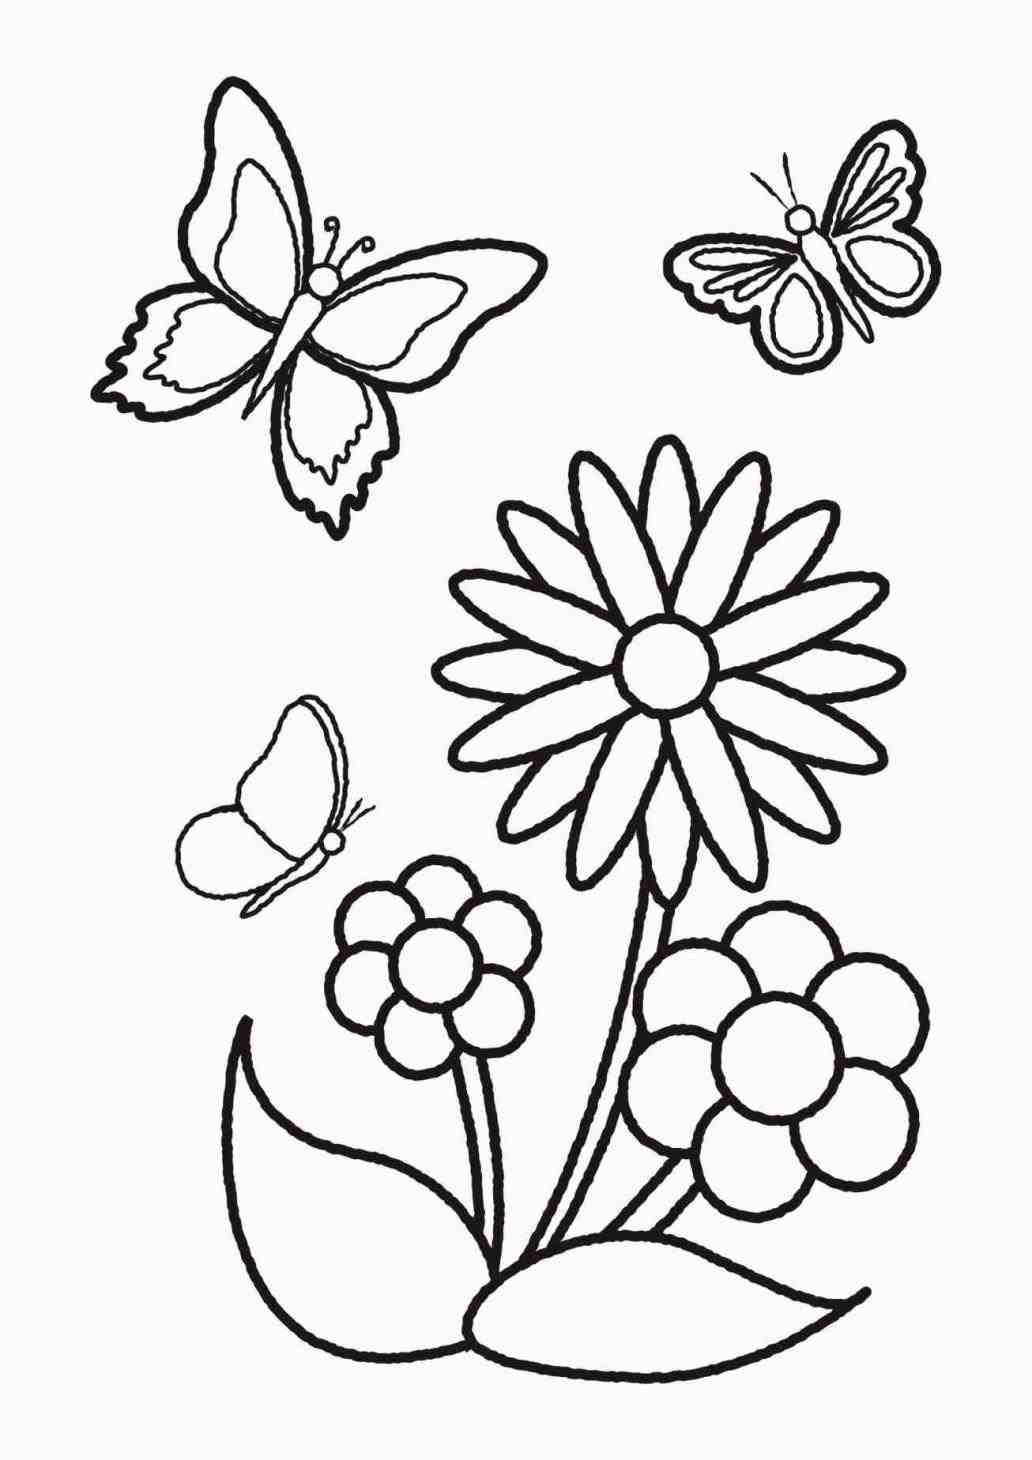 1032x1460 The Images Collection Of Drawing Ideas Easy Flowers Lily Nice